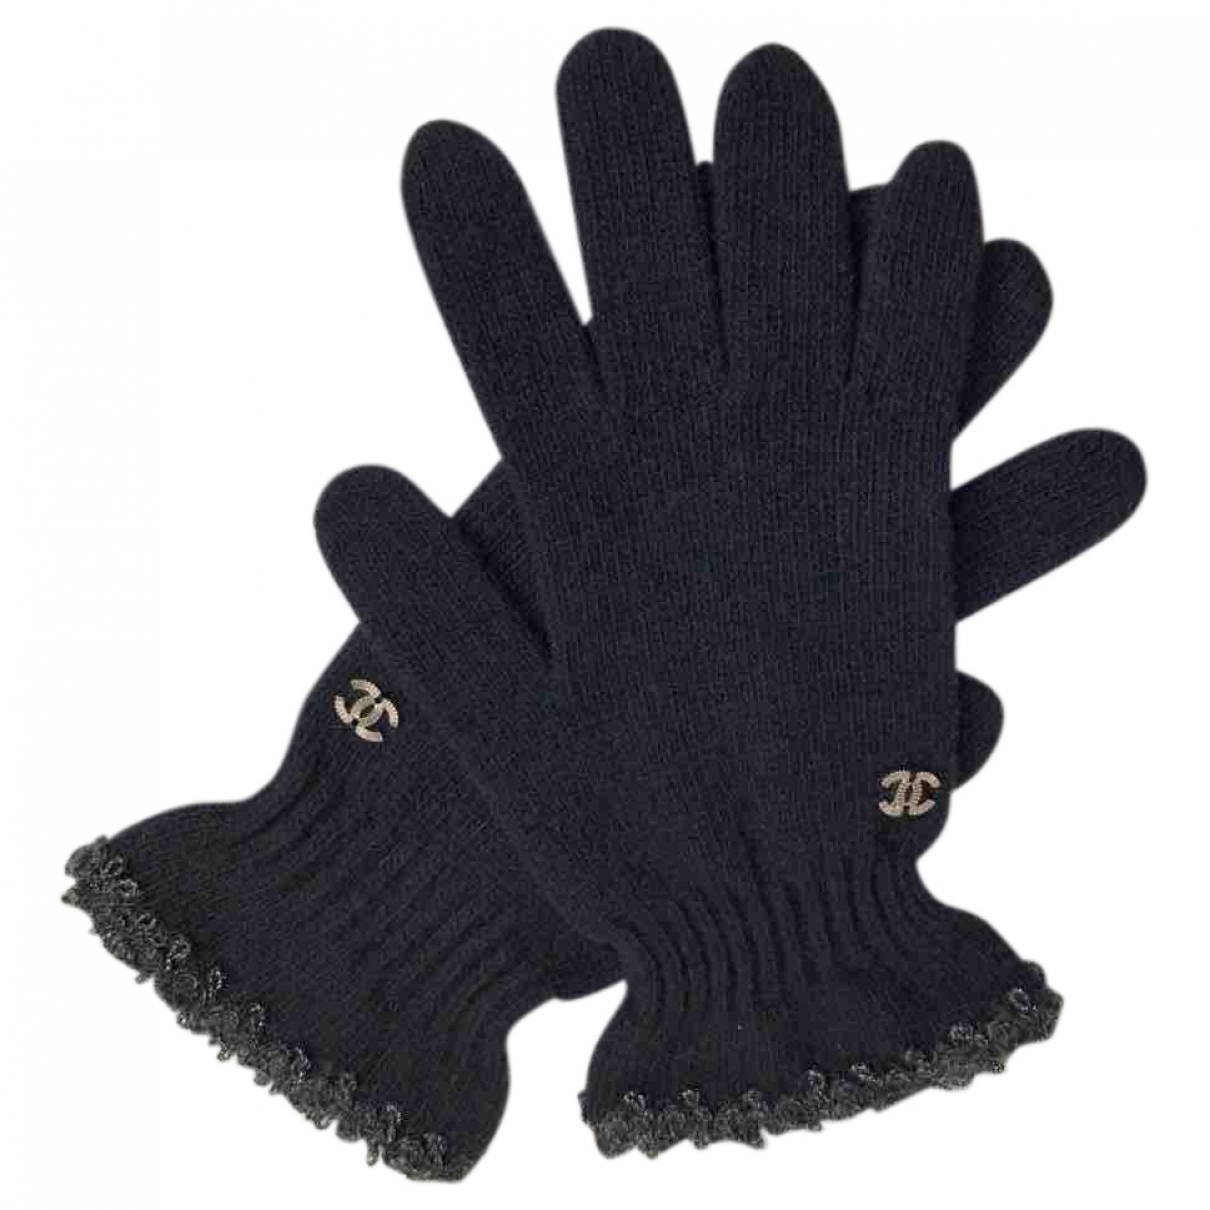 Chanel \N Black Wool Gloves for Women M International